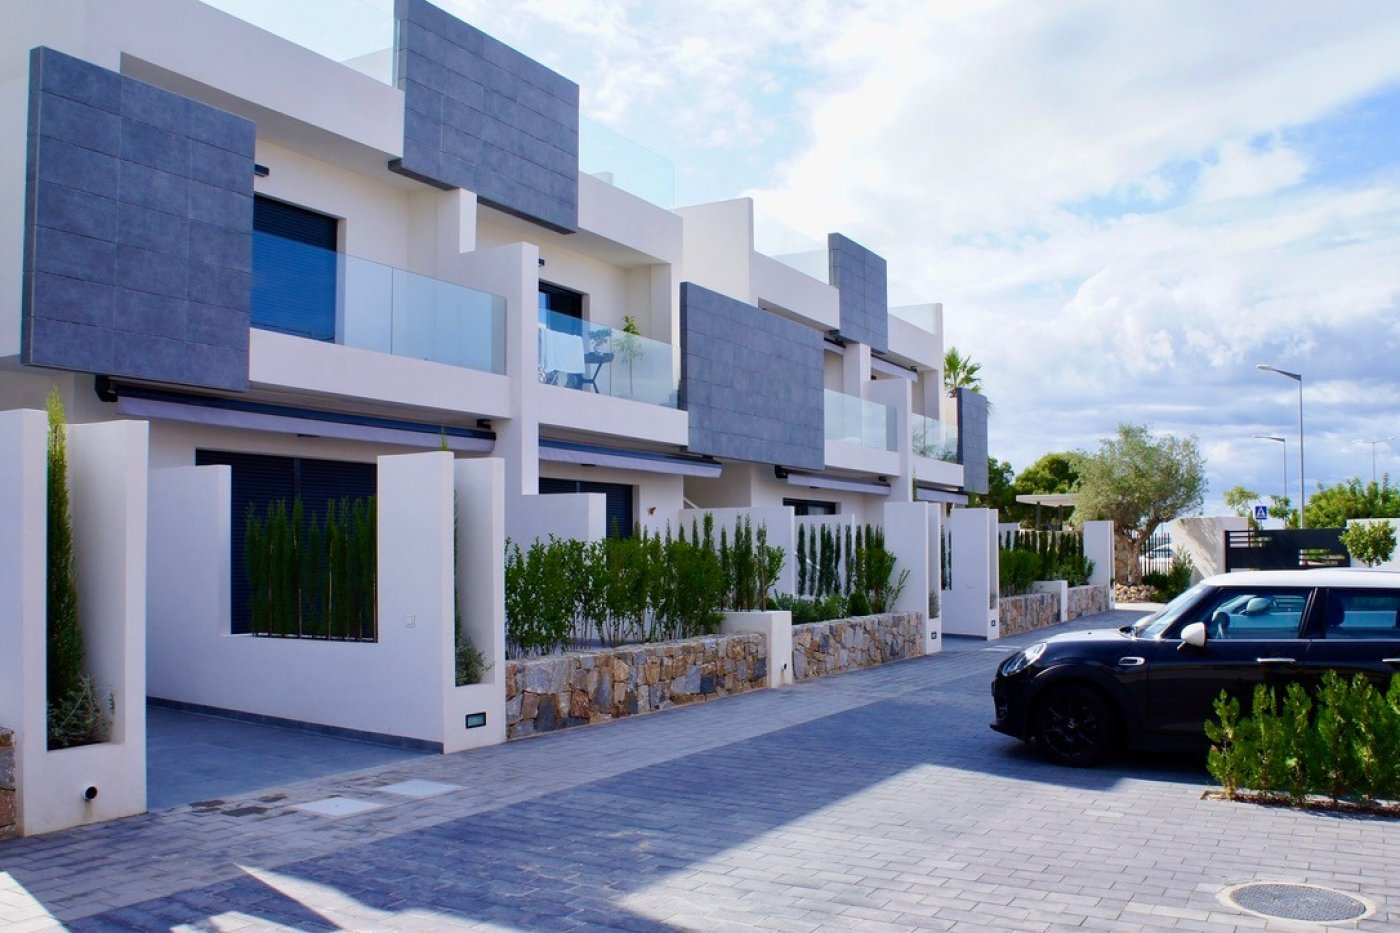 Gallery Image 5 of Lovely new build 2 bed penthouse with 2 bath and 58 m2 roof terrasse